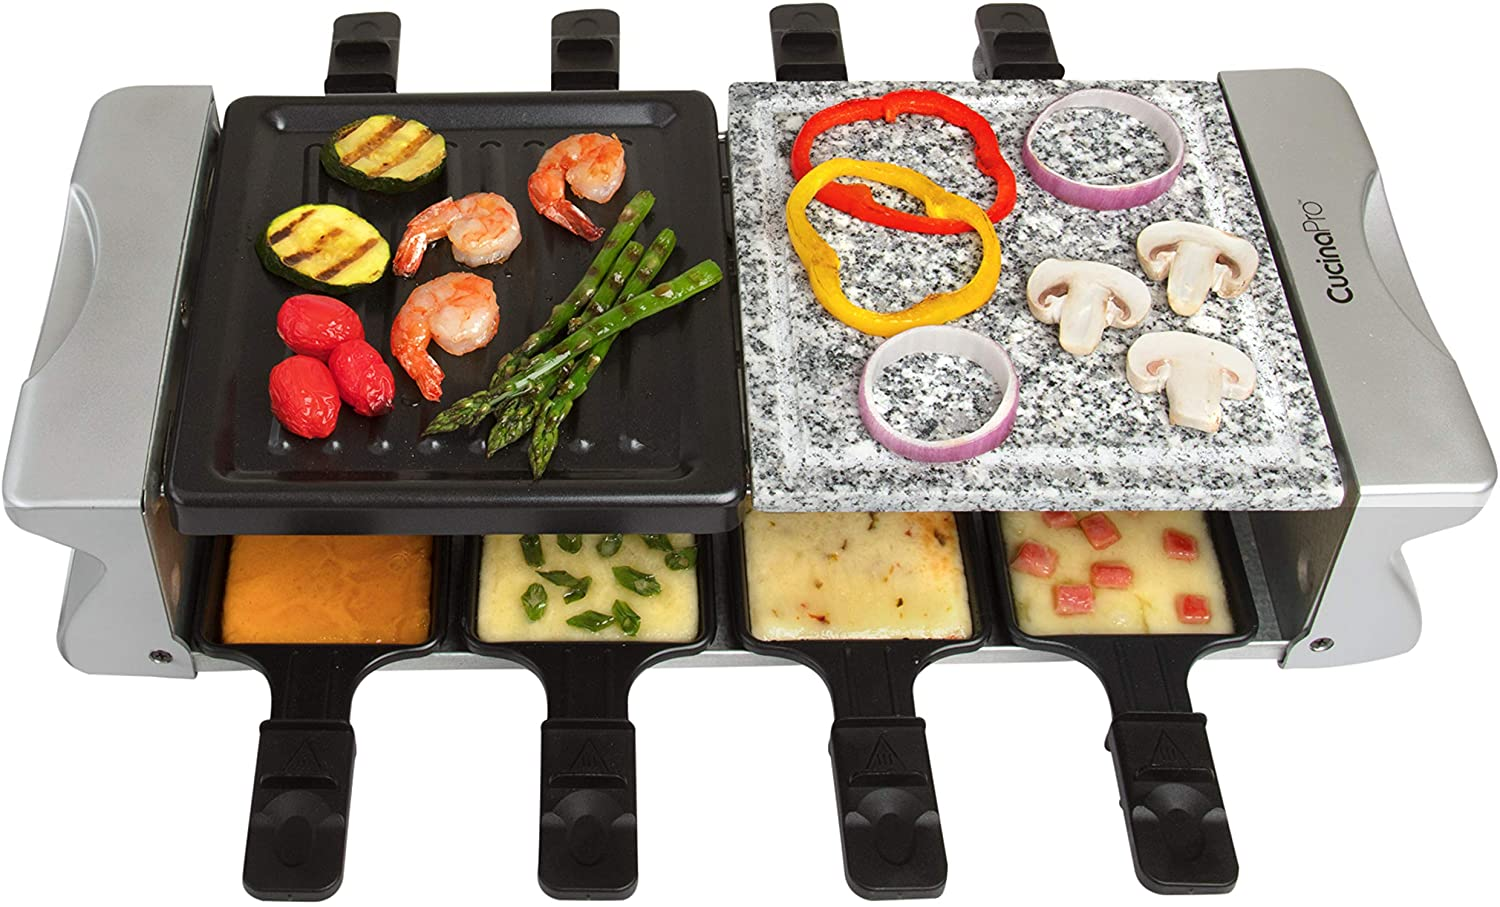 Dual Cheese Raclette Table Grill w Non-stick Grilling Plate and Cooking Stone- Deluxe 8 Person Electric Tabletop Cooker- Melt Cheese and Grill Meat and Vegetables at Once, Great Father's Day Gift